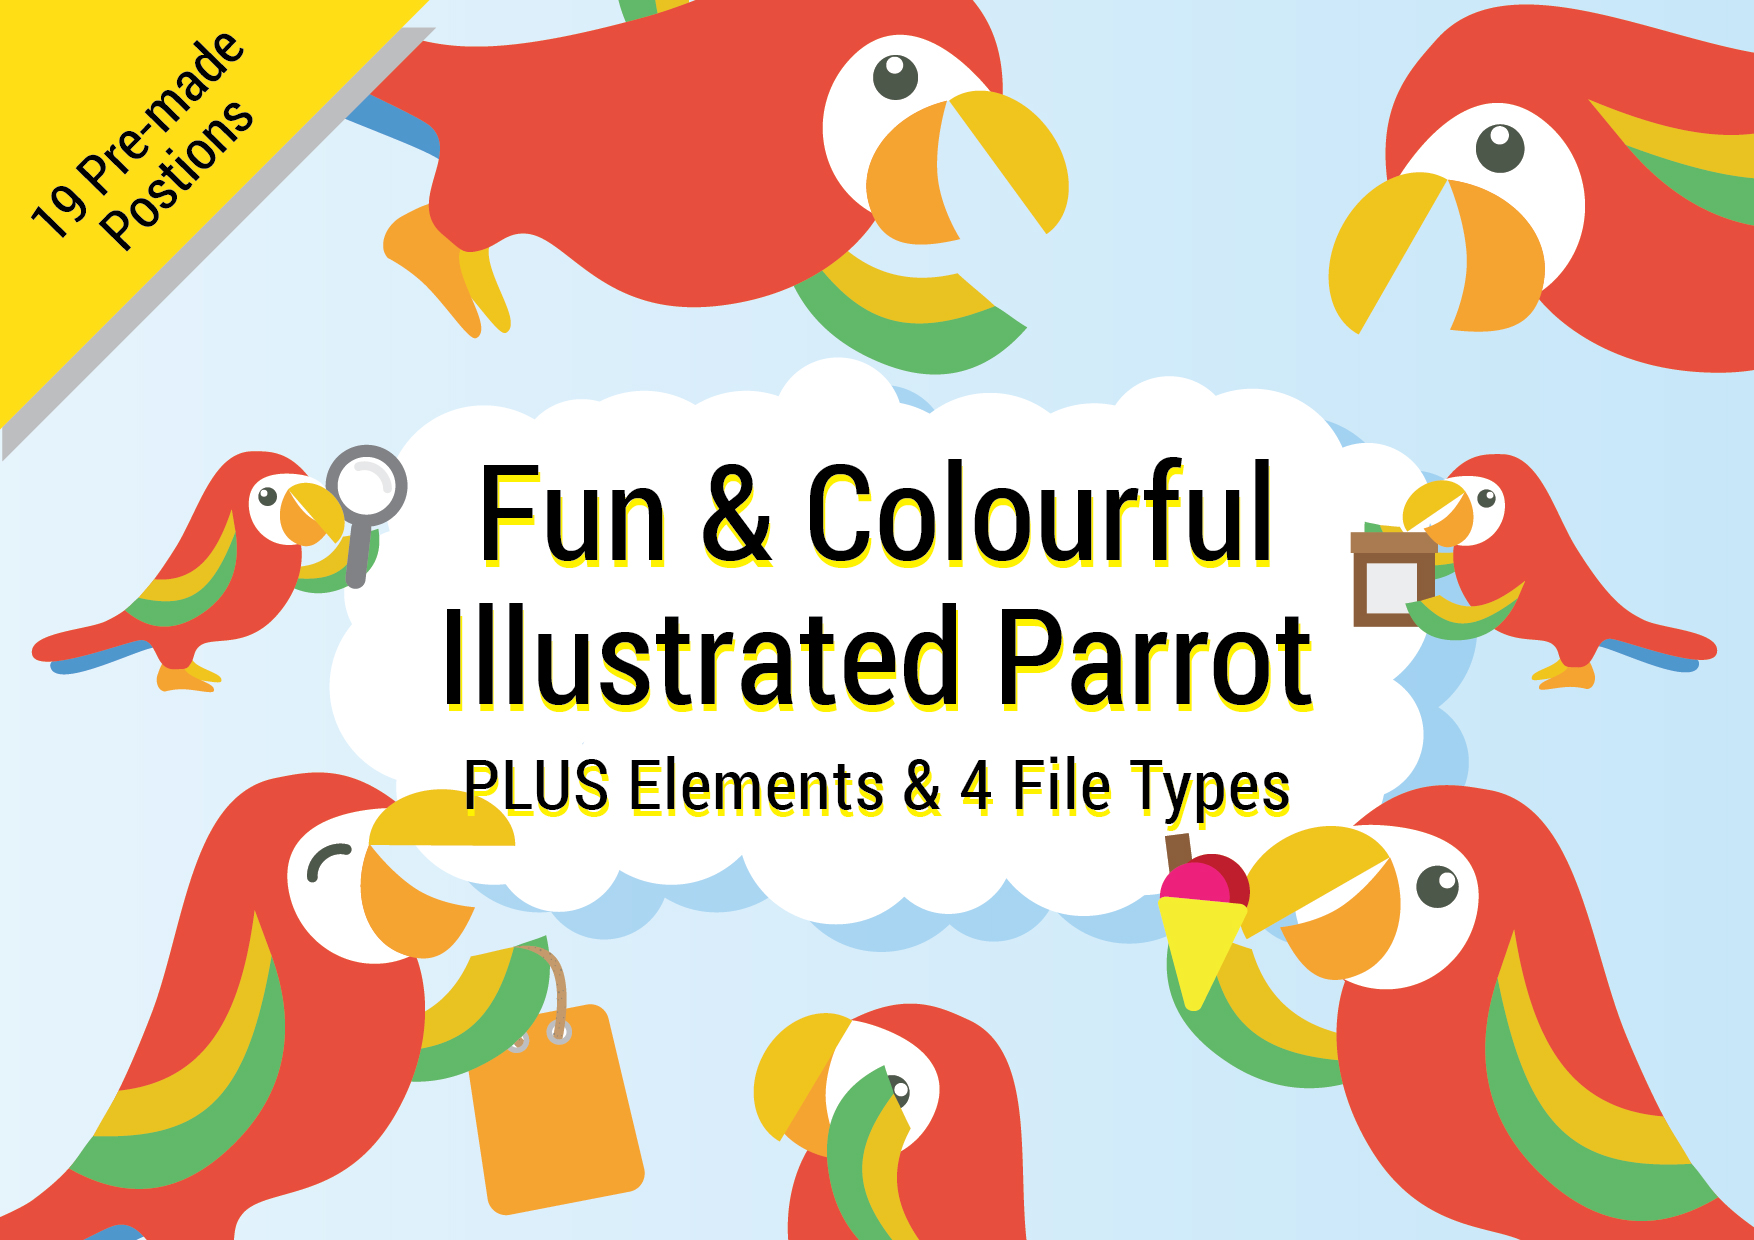 Fun and Colourful Illustrated Parrot